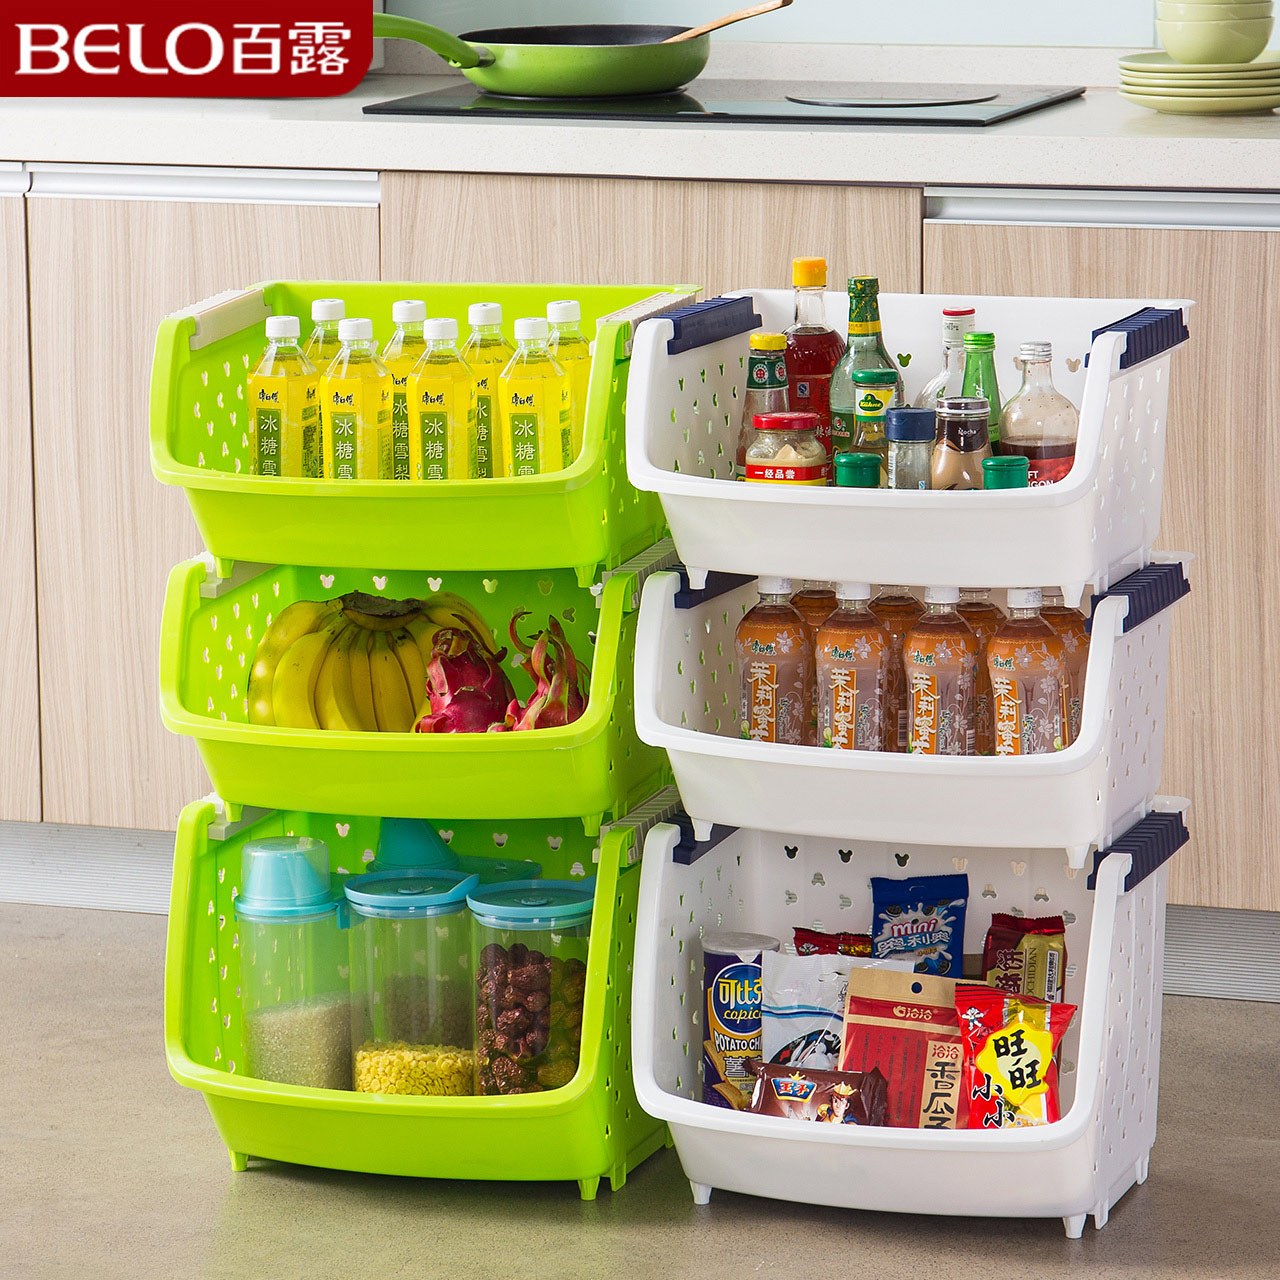 [Promote] dew 1 heightening 2 cm large fruit and vegetable kitchen shelving cruet kitchen storage rack storage rack